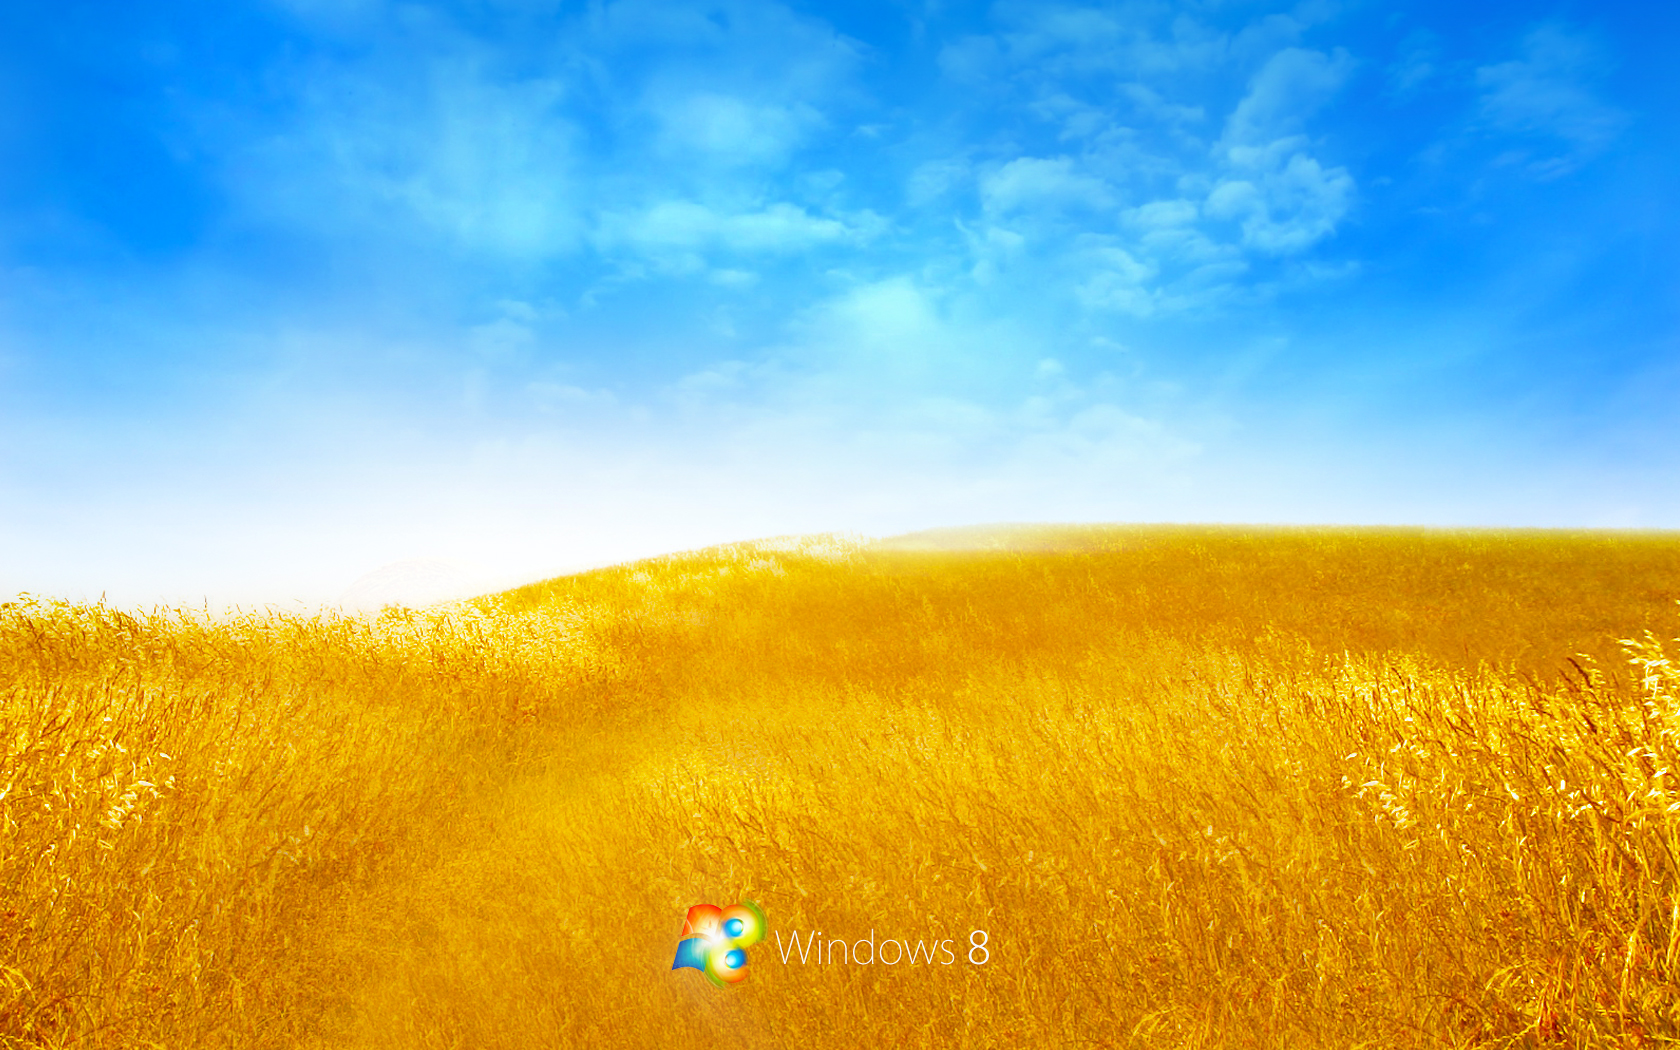 30 beautiful windows 8 wallpapers in high quality for Best quality windows